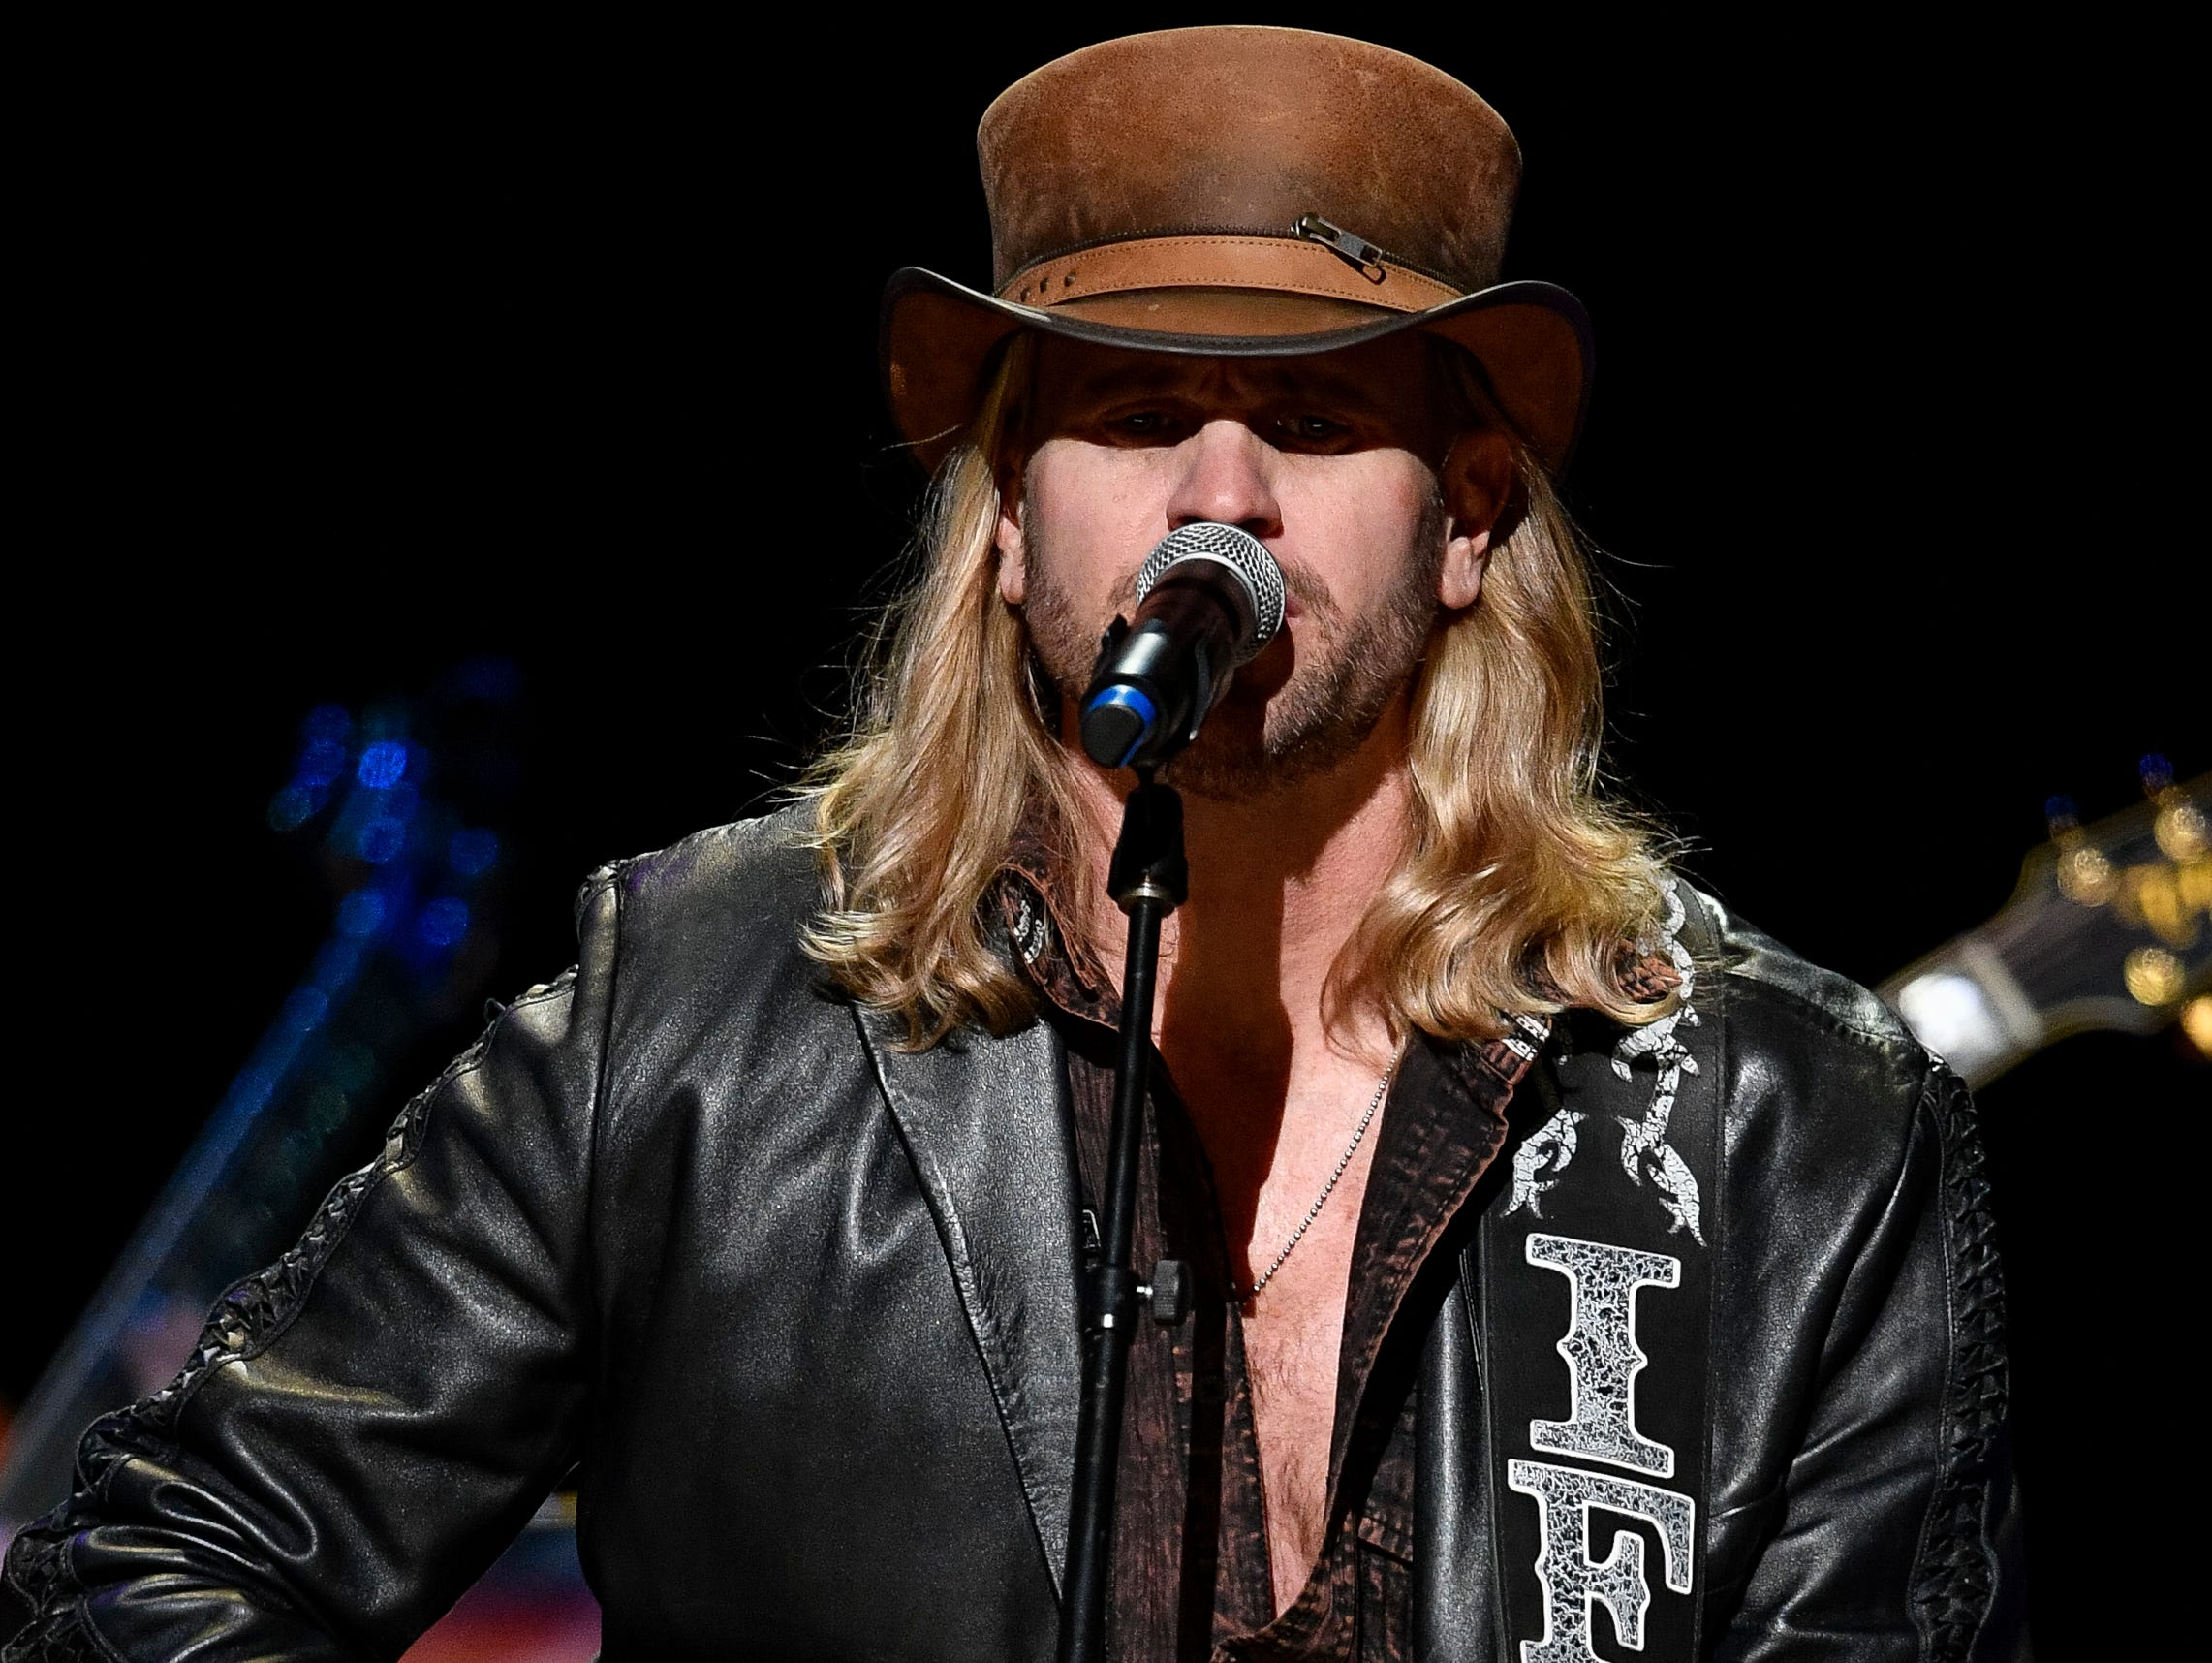 Ira Dean performs during the C'Ya On The Flipside Benefit Concert at the Grand Ole Opry House in Nashville, Tenn., Wednesday, Jan. 9, 2019.